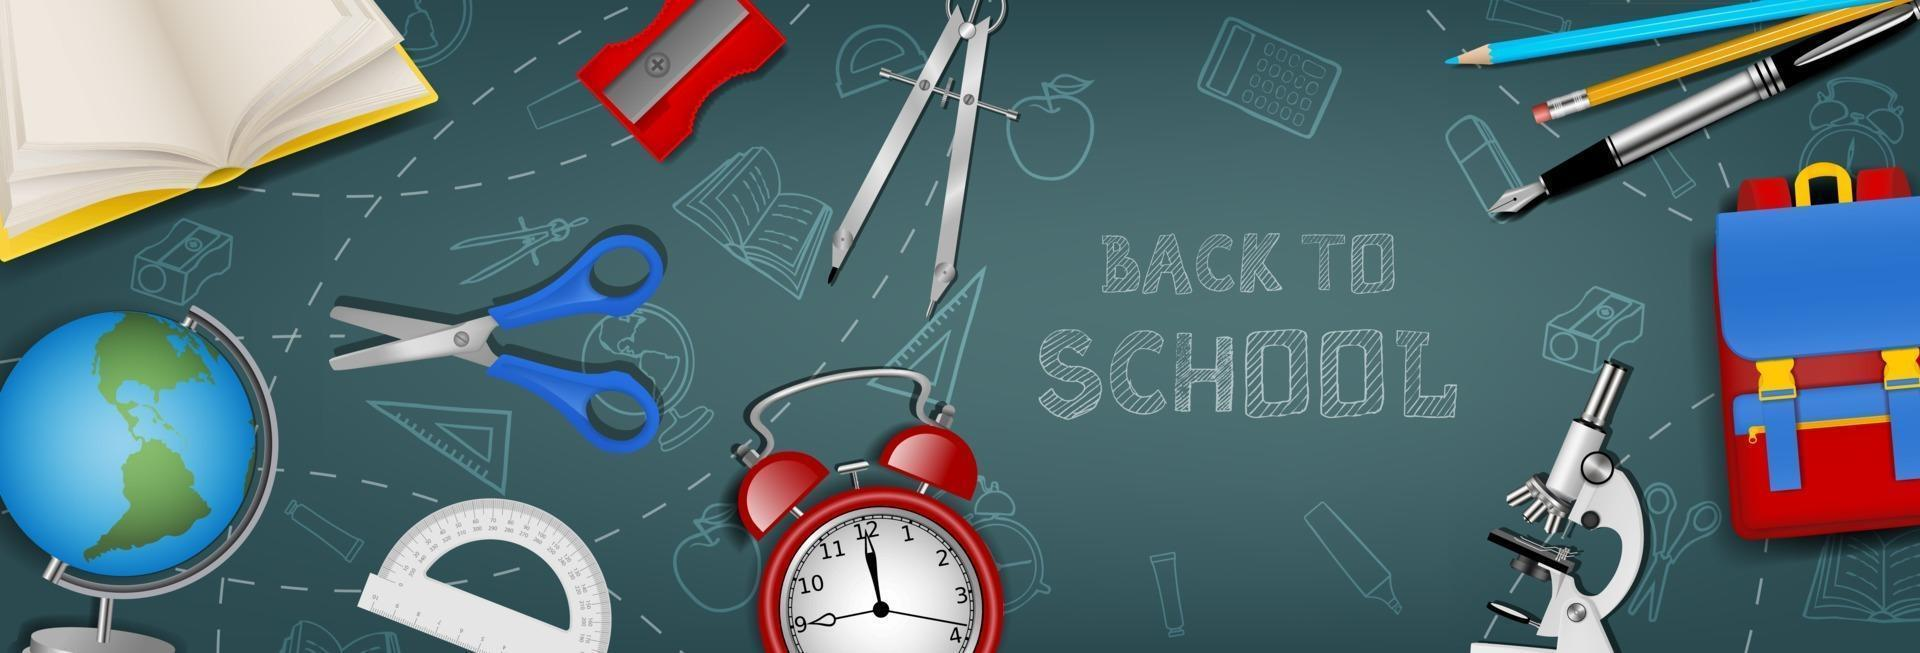 Back to school banner with realistic school supplies on chalkboard background vector